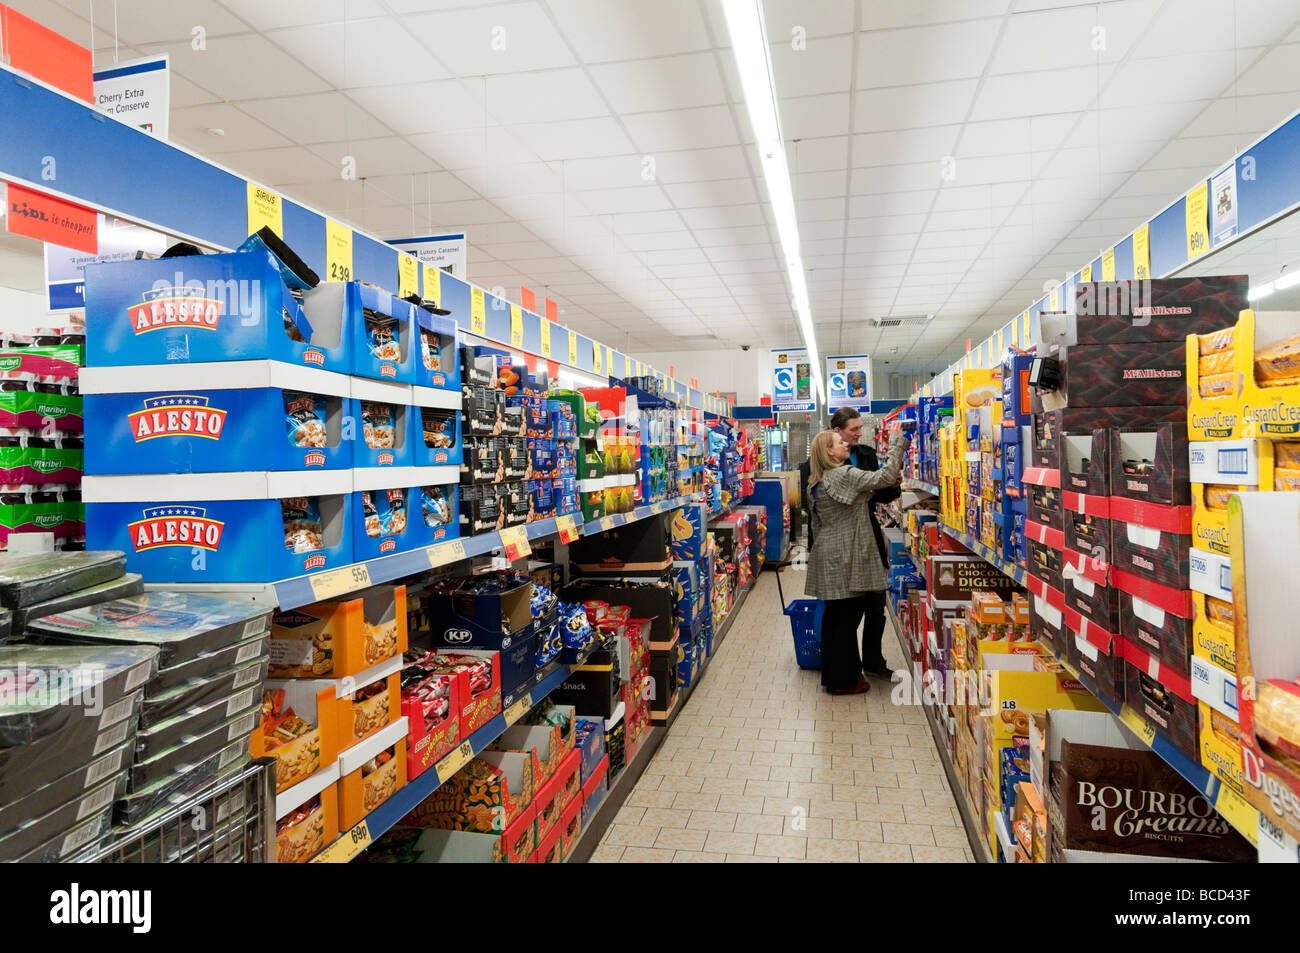 Shopping in Lidl supermarket  England UK Stock Photo  24874851   Alamy Shopping in Lidl supermarket  England UK